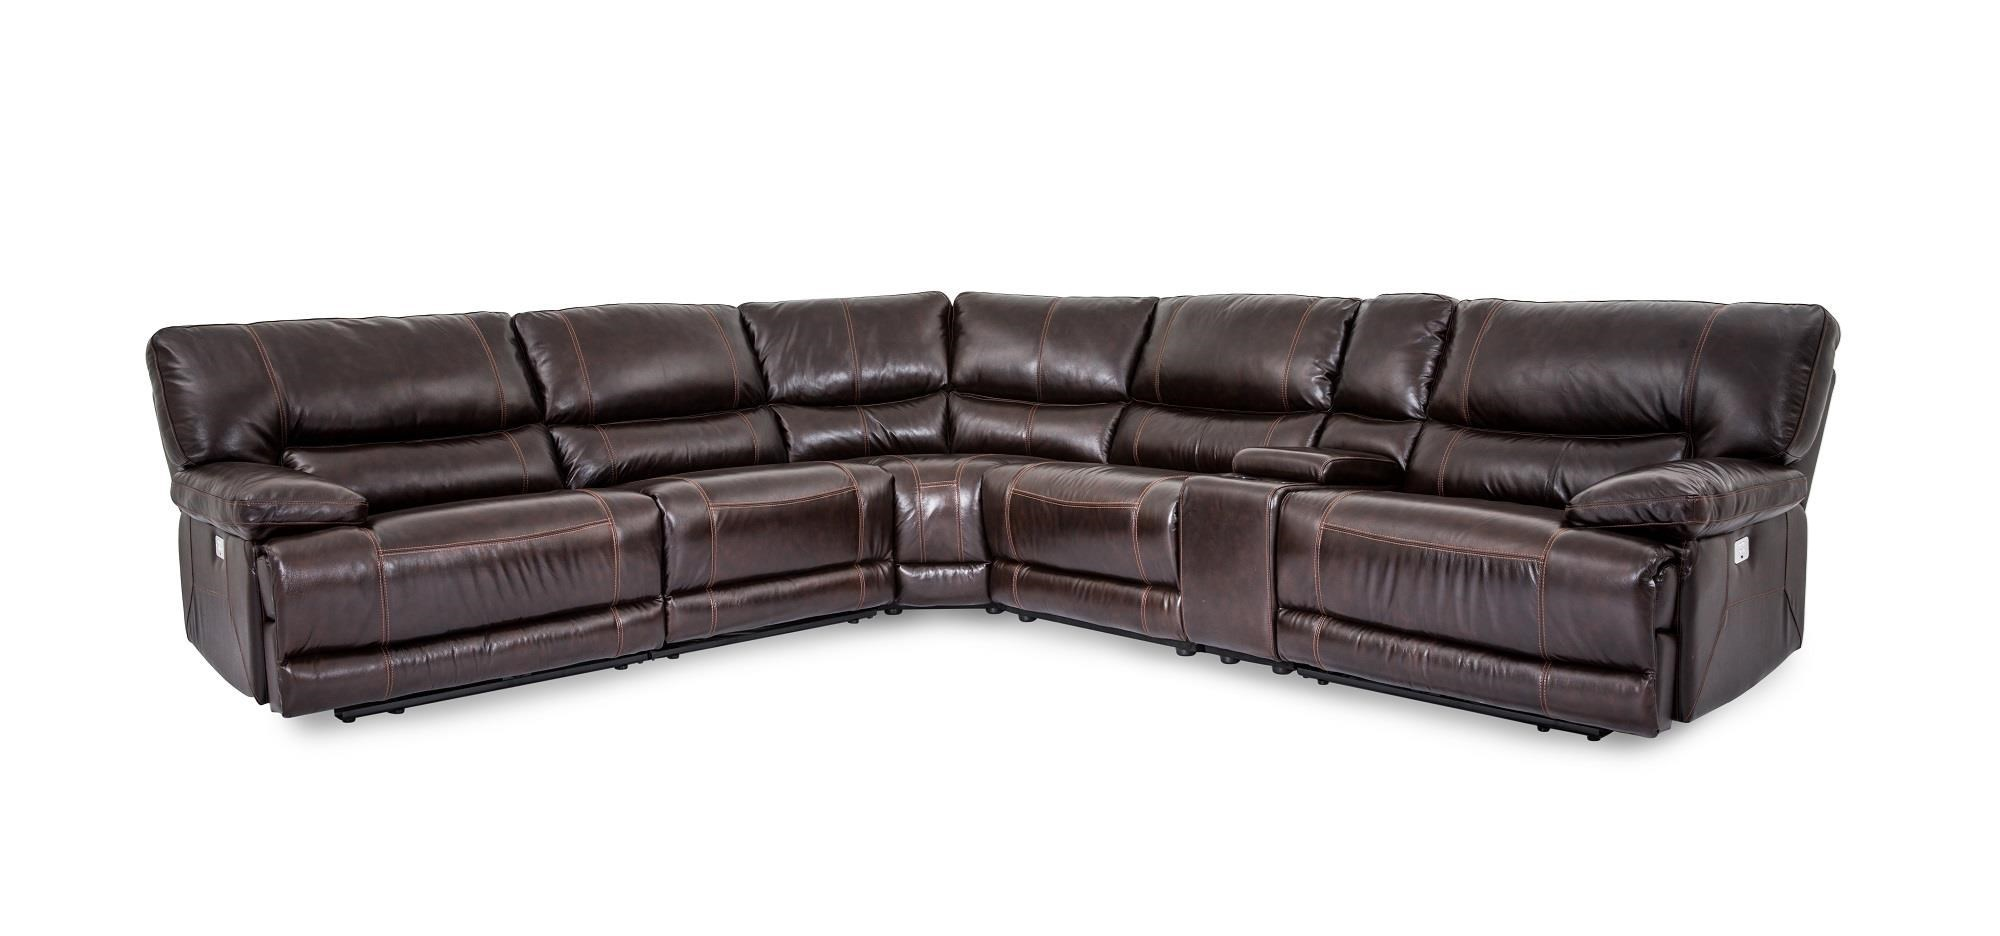 Cheers Sofa CollinsLeather Pwr Reclining Sectional ...